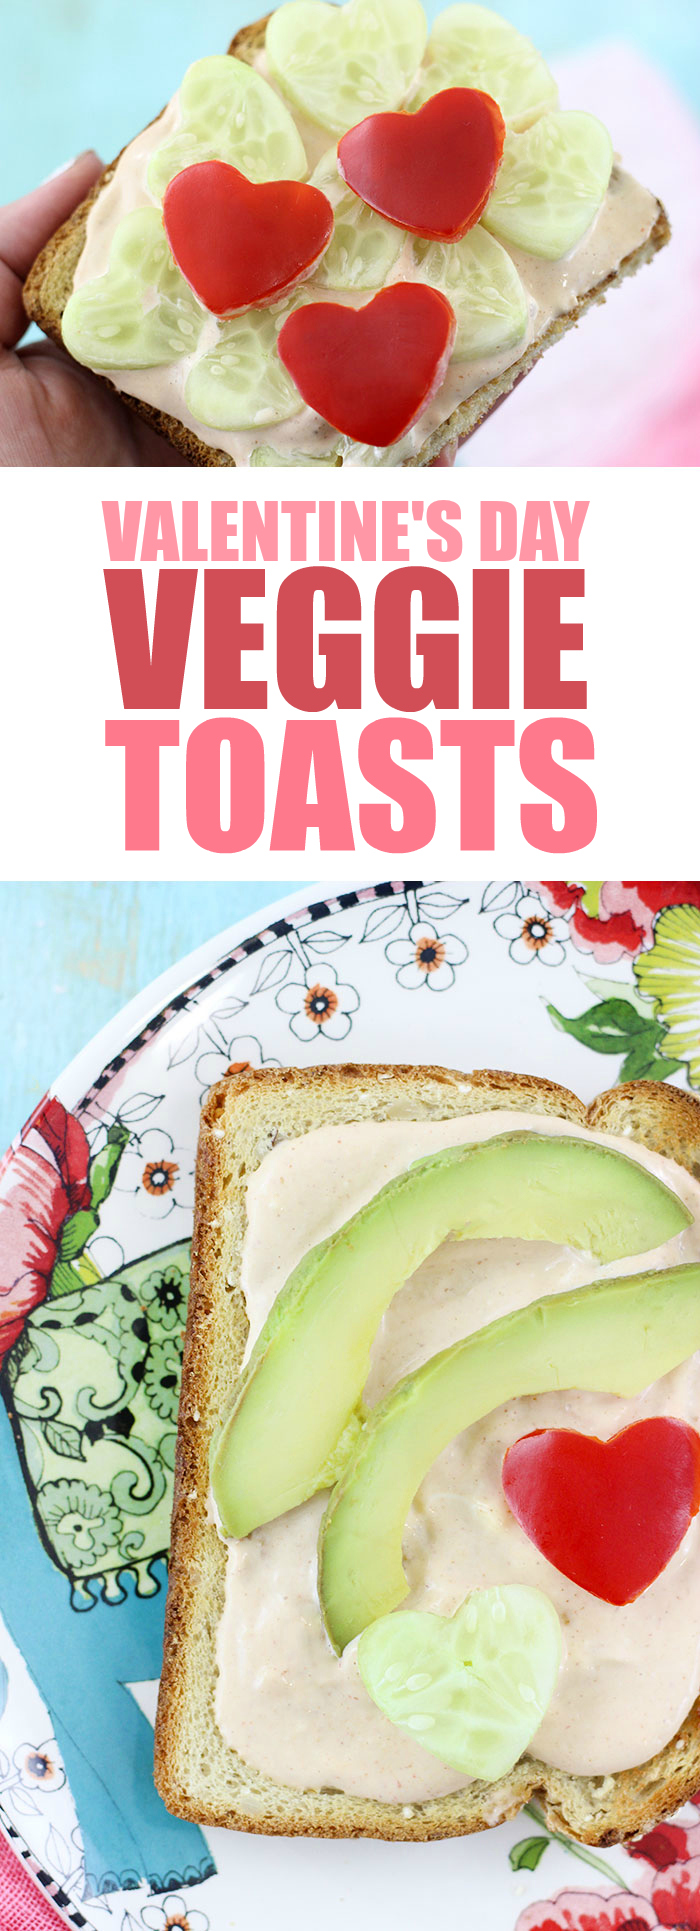 Valentine 39 s day vegetables heart shaped veggie toasts for Things to do on valentine s day near me